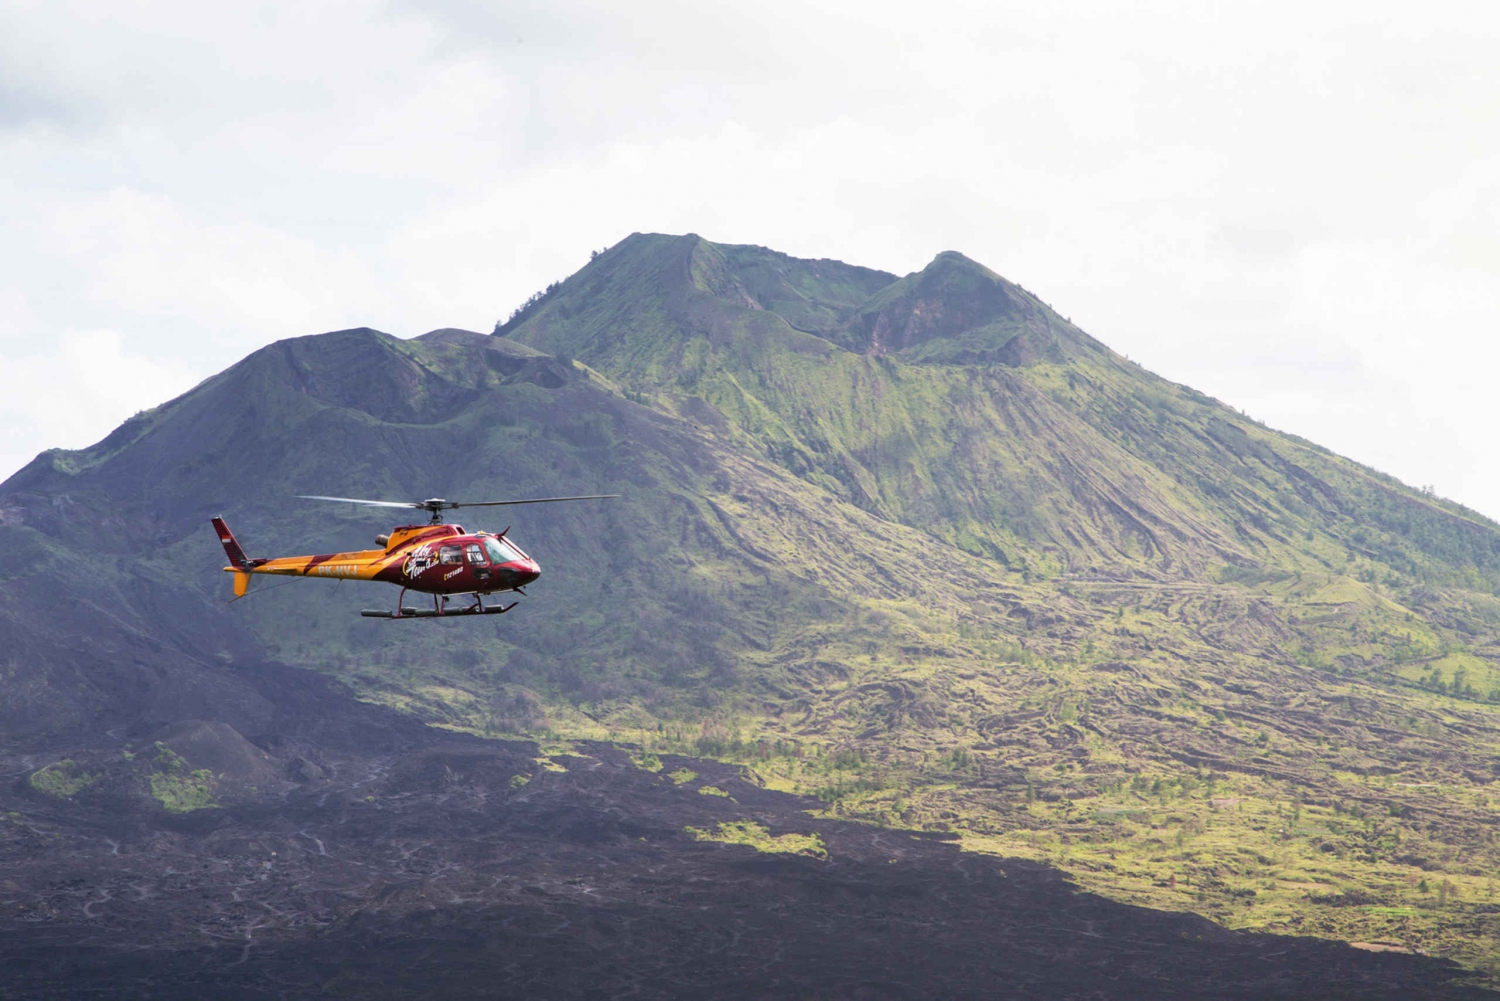 Kintamani Volcano 30-Minute Scenic Helicopter Tour